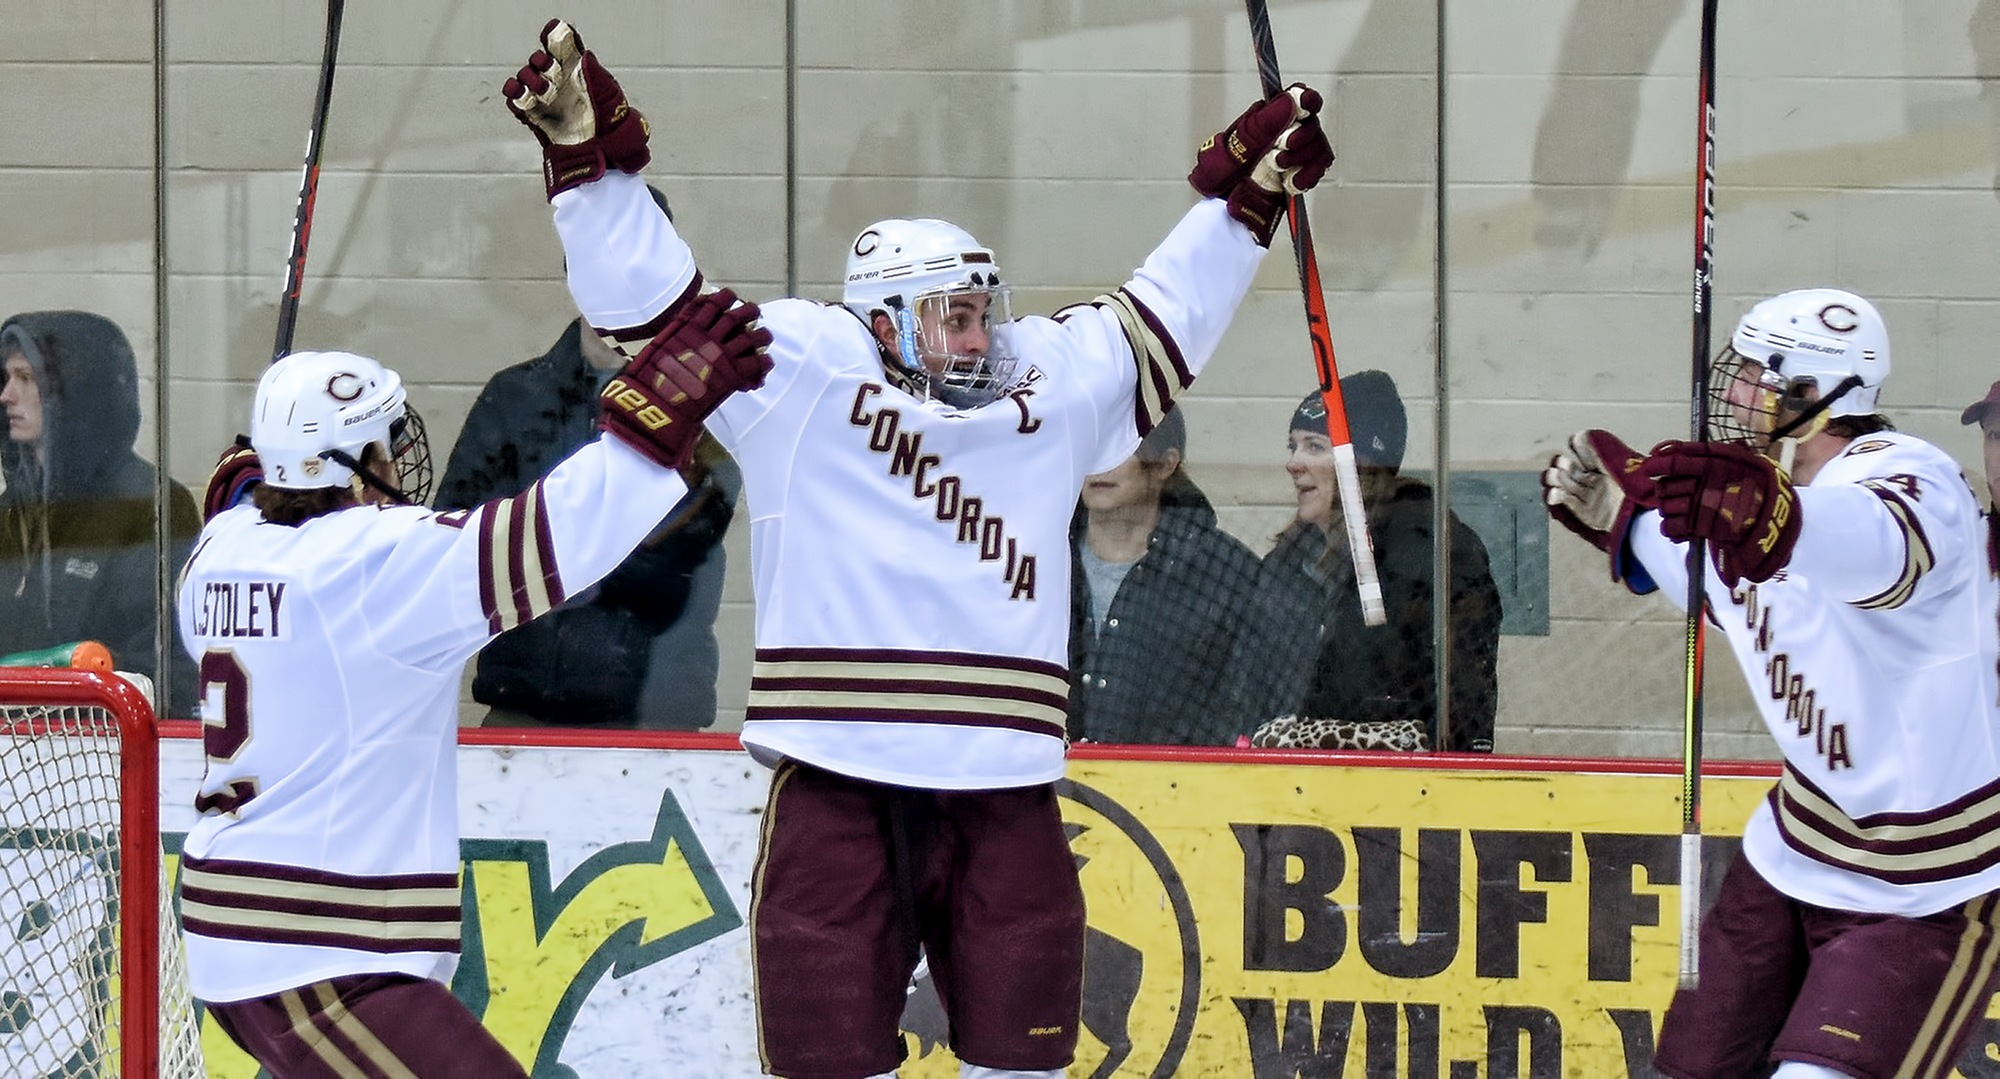 Senior captain Joe Burgmeier raises his arms in celebration after scoring the game-winning goal against No.3-ranked Wis.-Eau Claire.